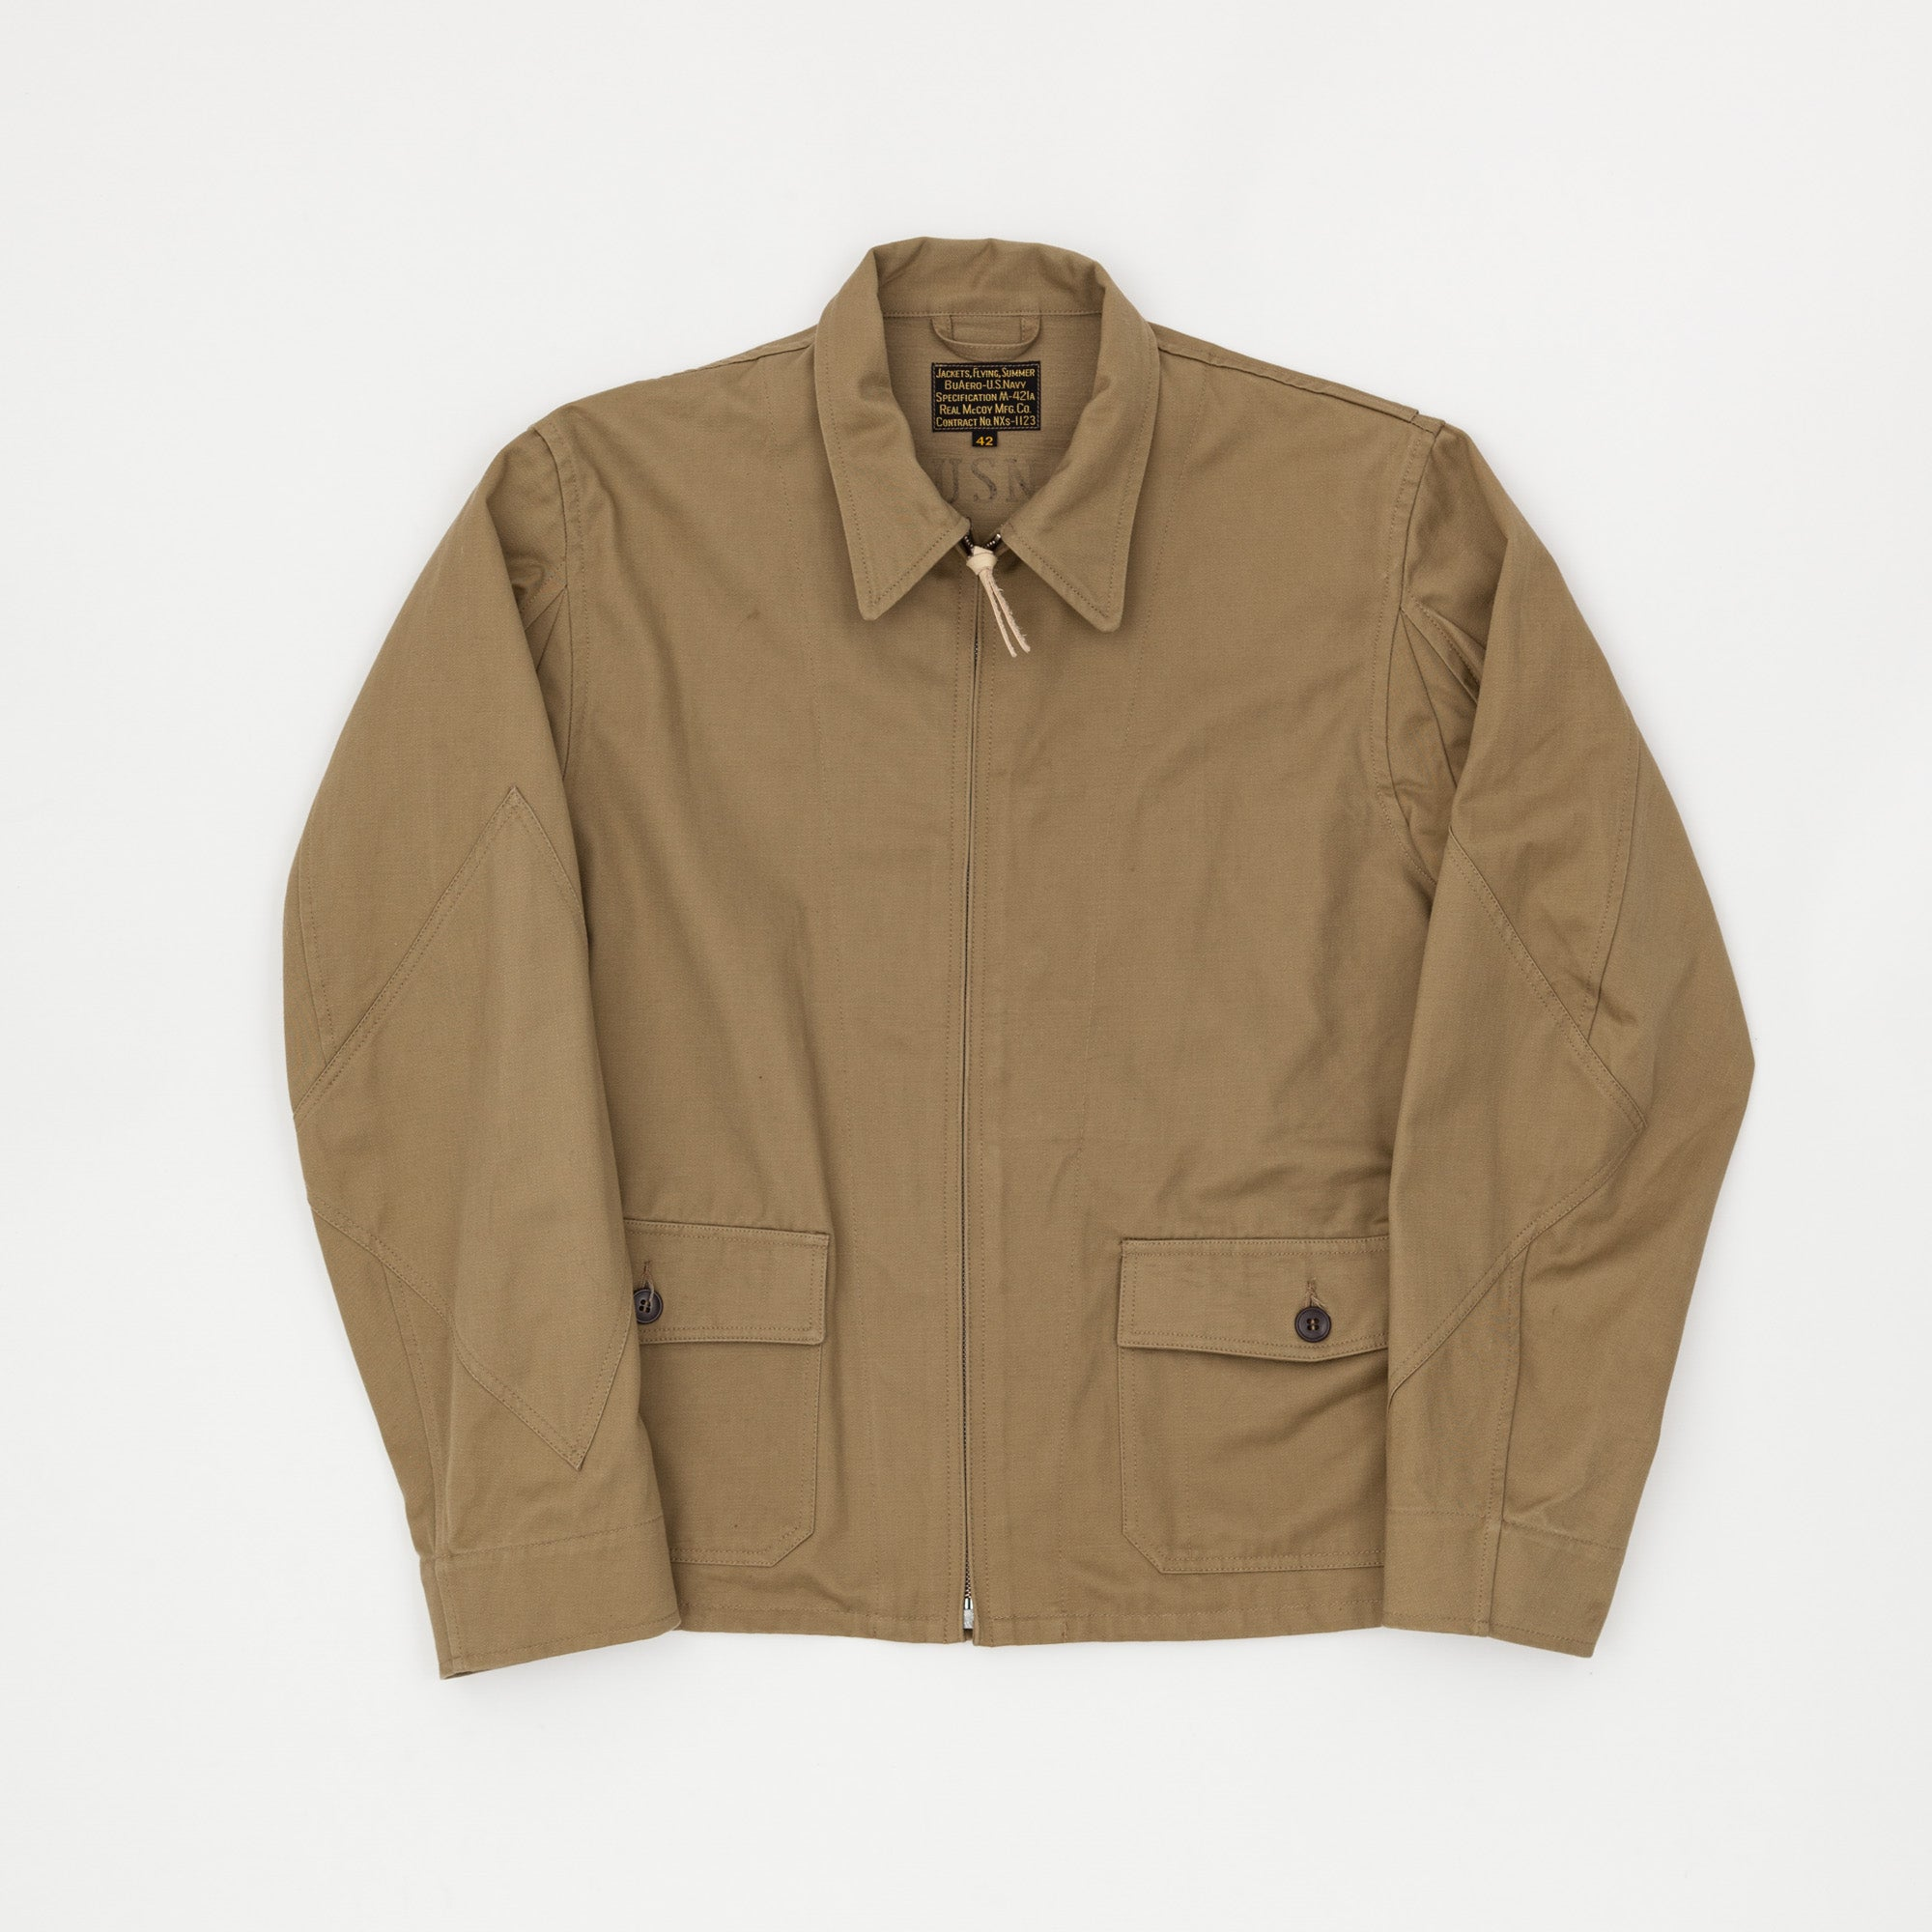 The Real McCoy's U.S. Navy M-421A Jacket